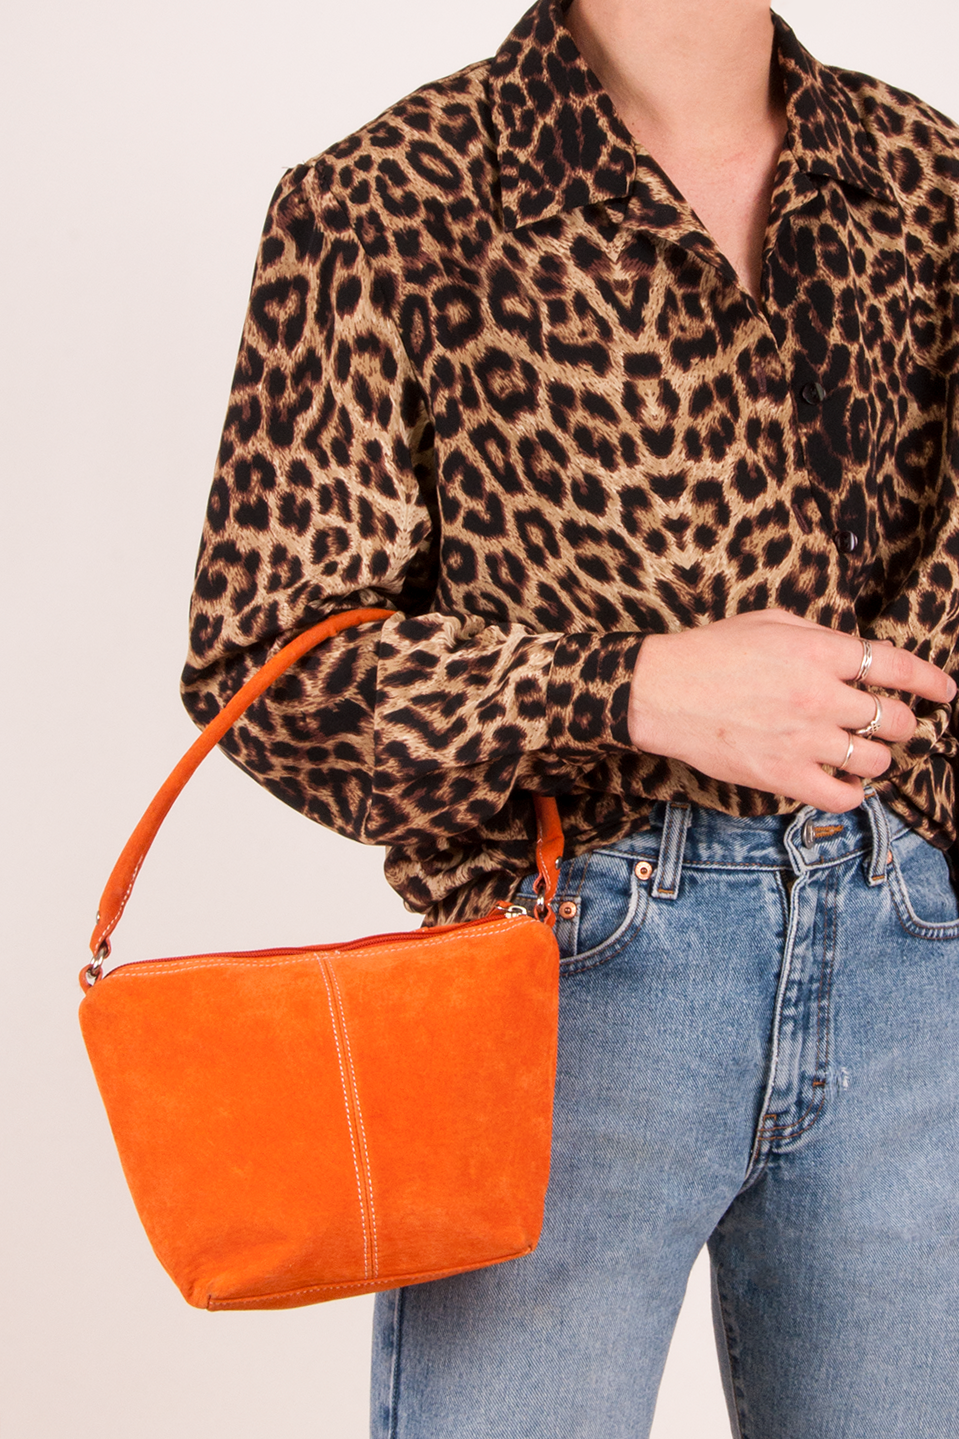 vintage orange suede mini bag from the 90's